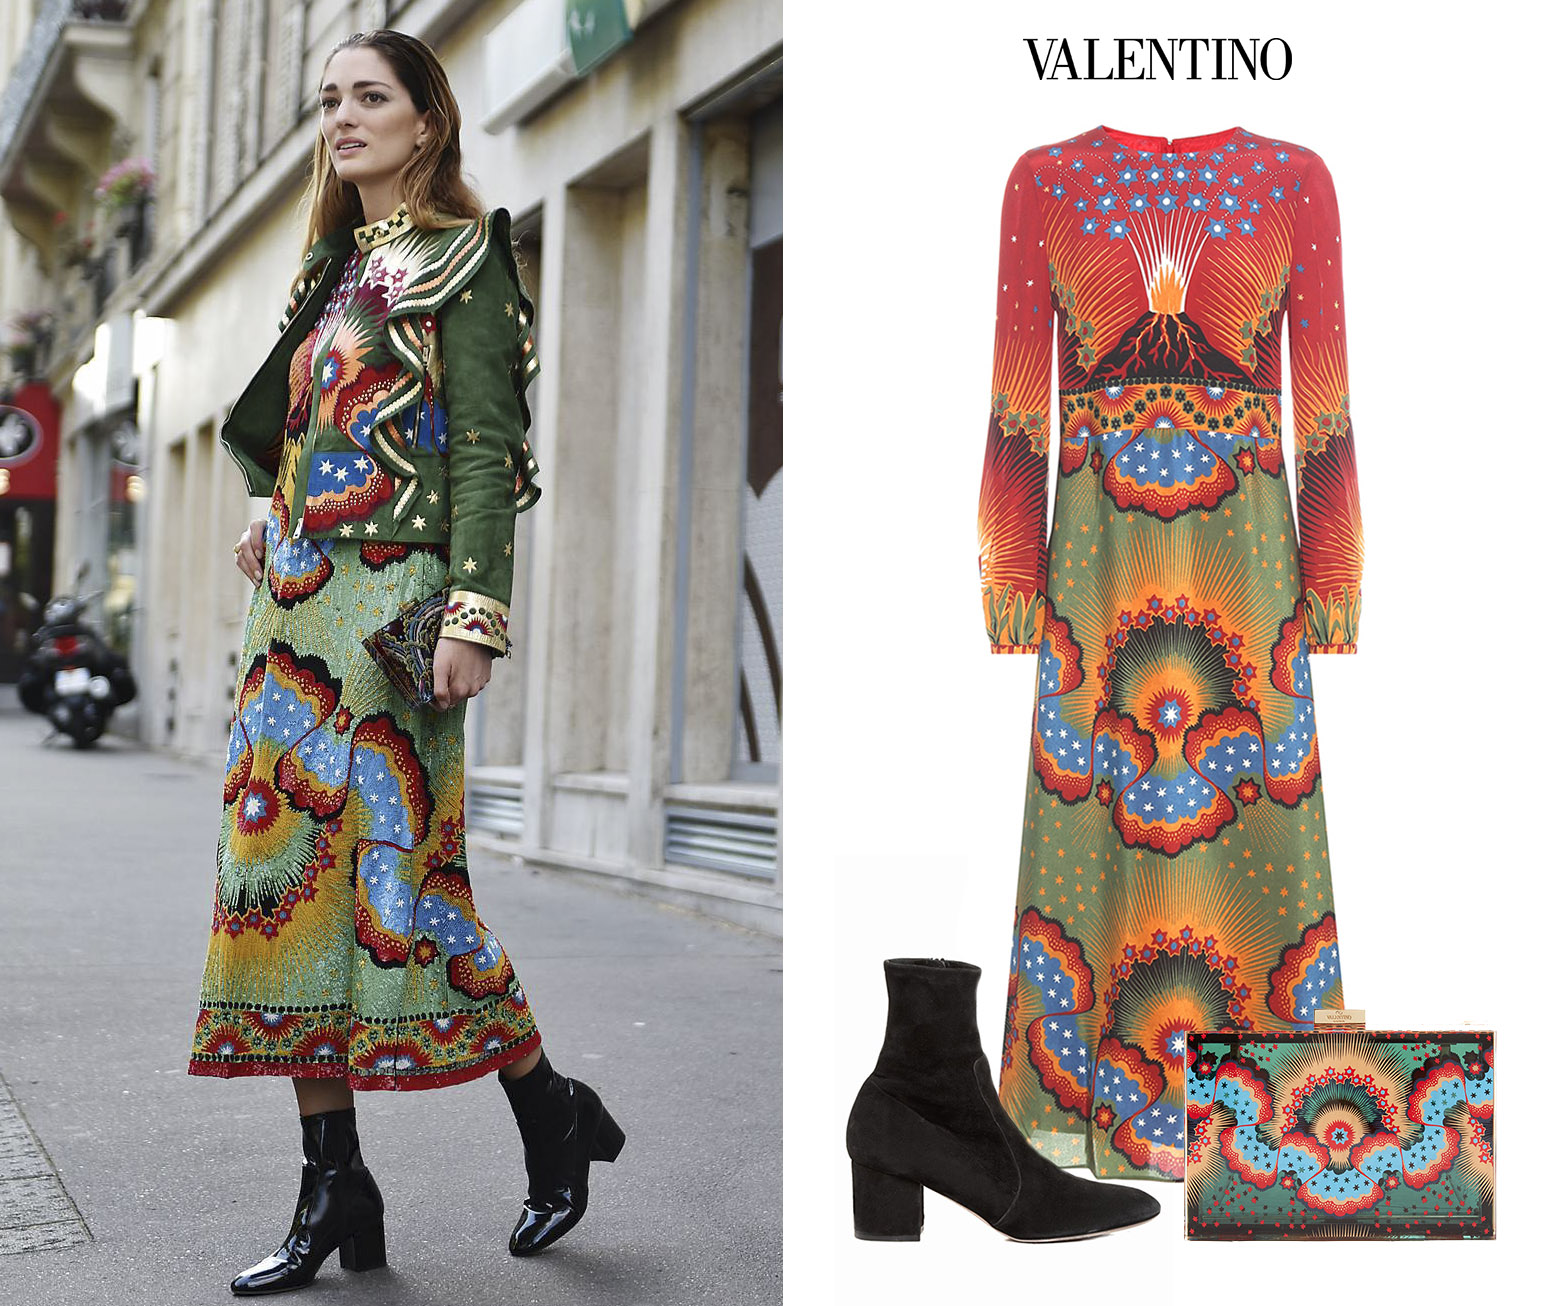 Sofia_Sanchez_Barrenechea_de_Betak_Valentino_2017_Haute_Couture_Show_Paris_Wonderland_Enchanted_Dress_Clutch_Black_Boots_Shoes_Zapatos_Vestido.jpg